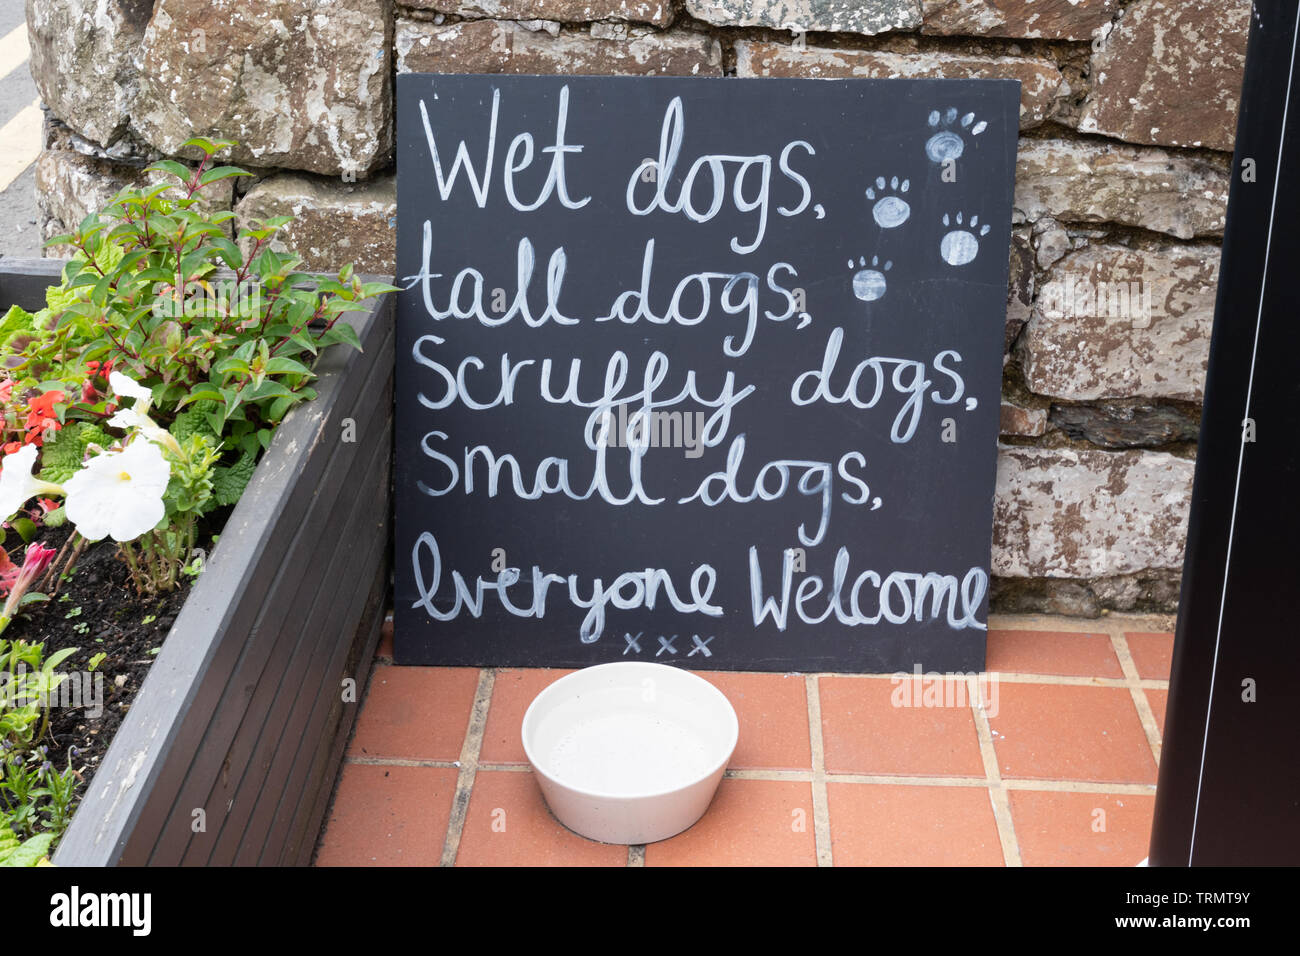 amusing-sign-outside-a-welsh-tearoom-wet-dogs-tall-dogs-scruffy-dogs-small-dogs-everyone-welcome-with-a-dog-water-bowl-TRMT9Y.jpg